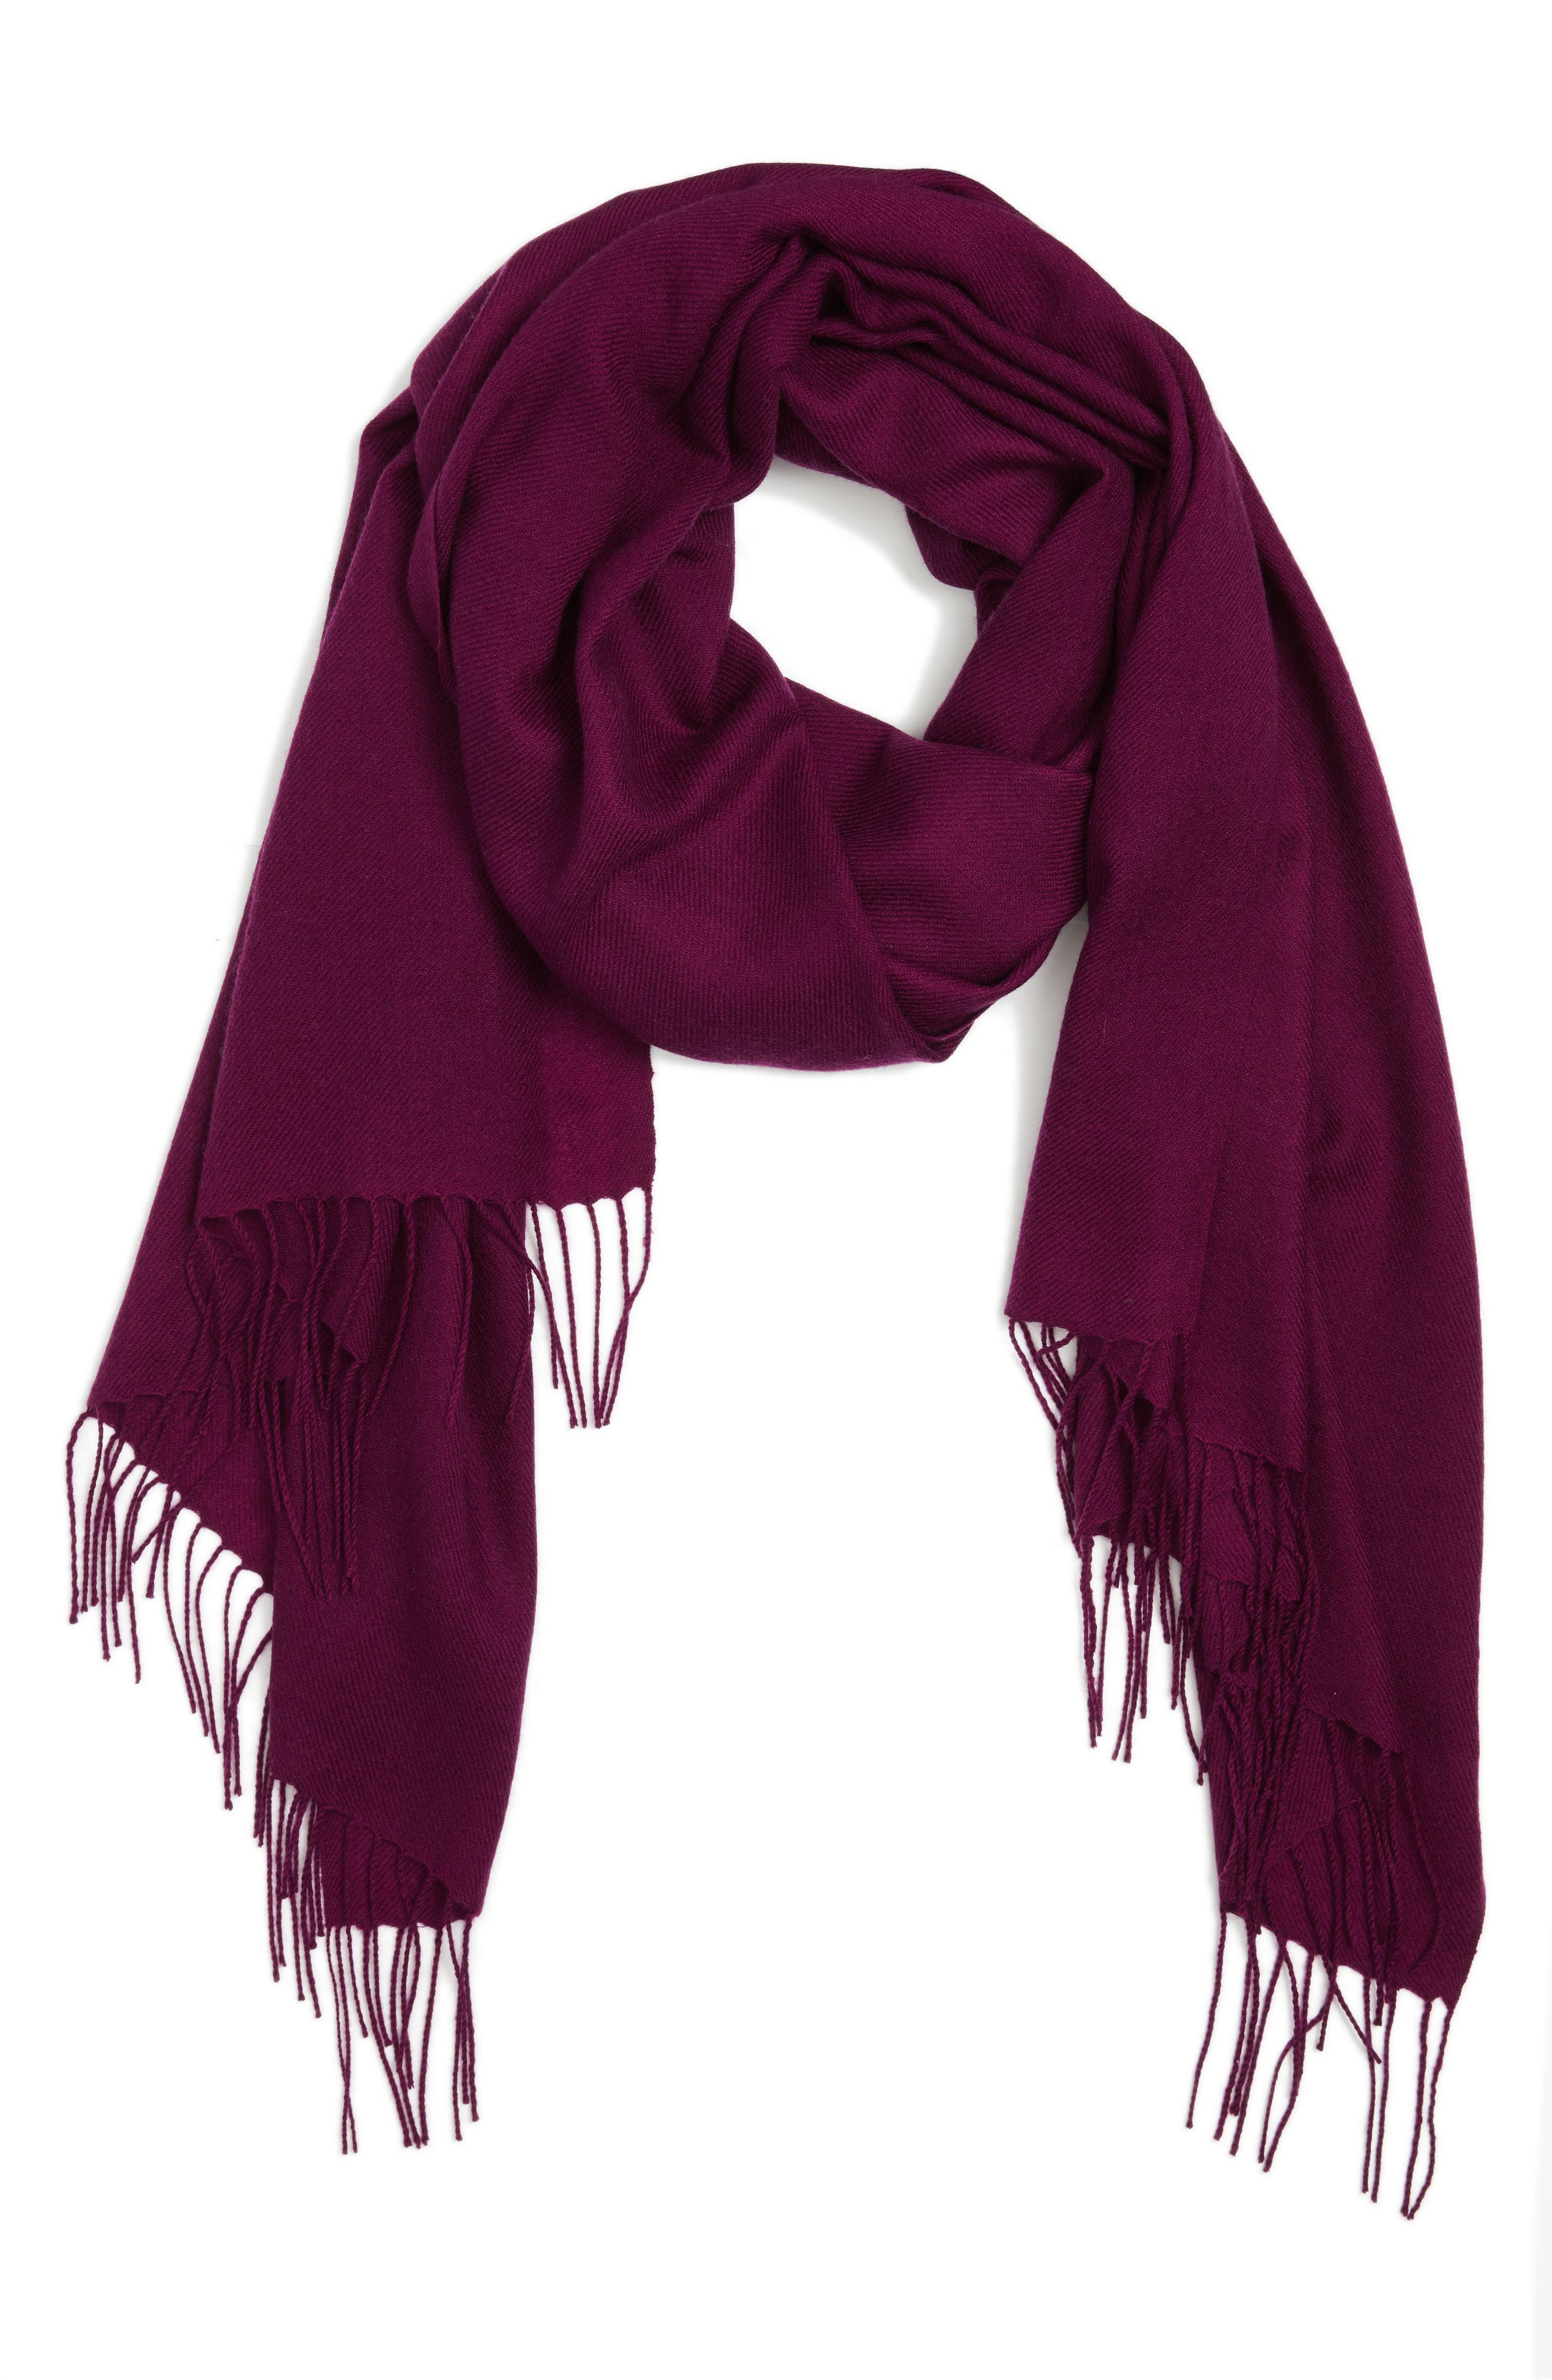 Tissue Weight Wool & Cashmere Scarf,                             Alternate thumbnail 116, color,